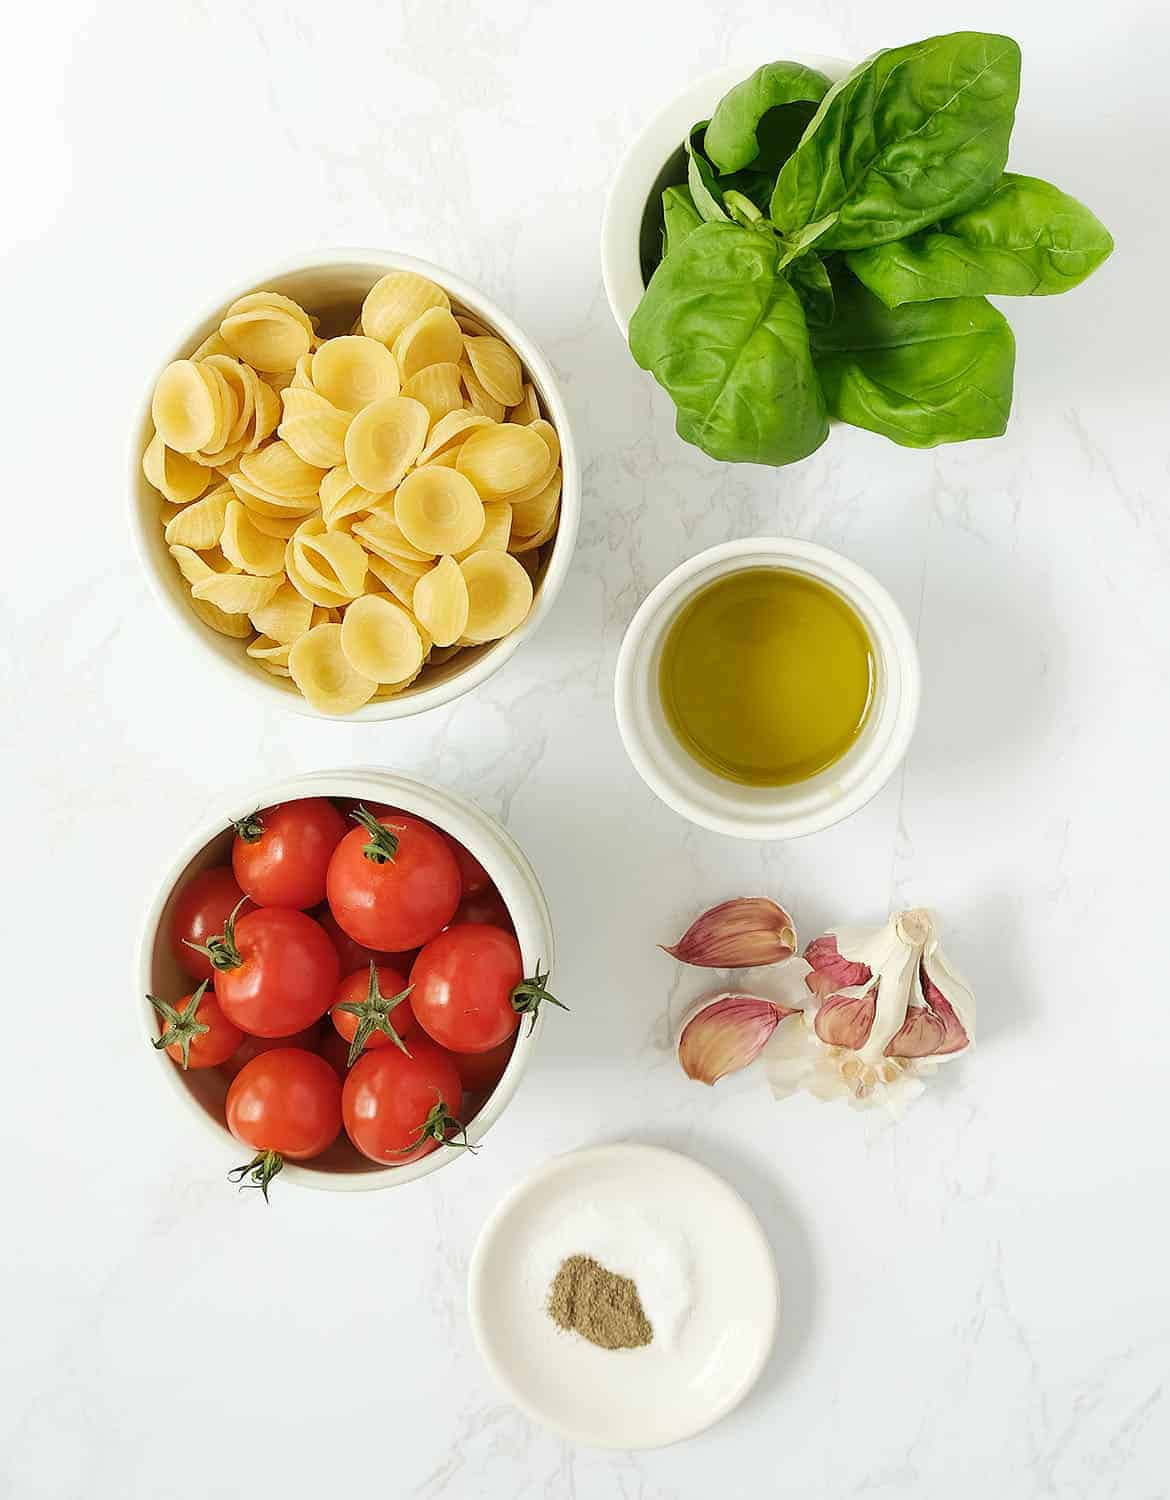 The ingredients to make this tomato pasta salad are in white bowls on a white background.